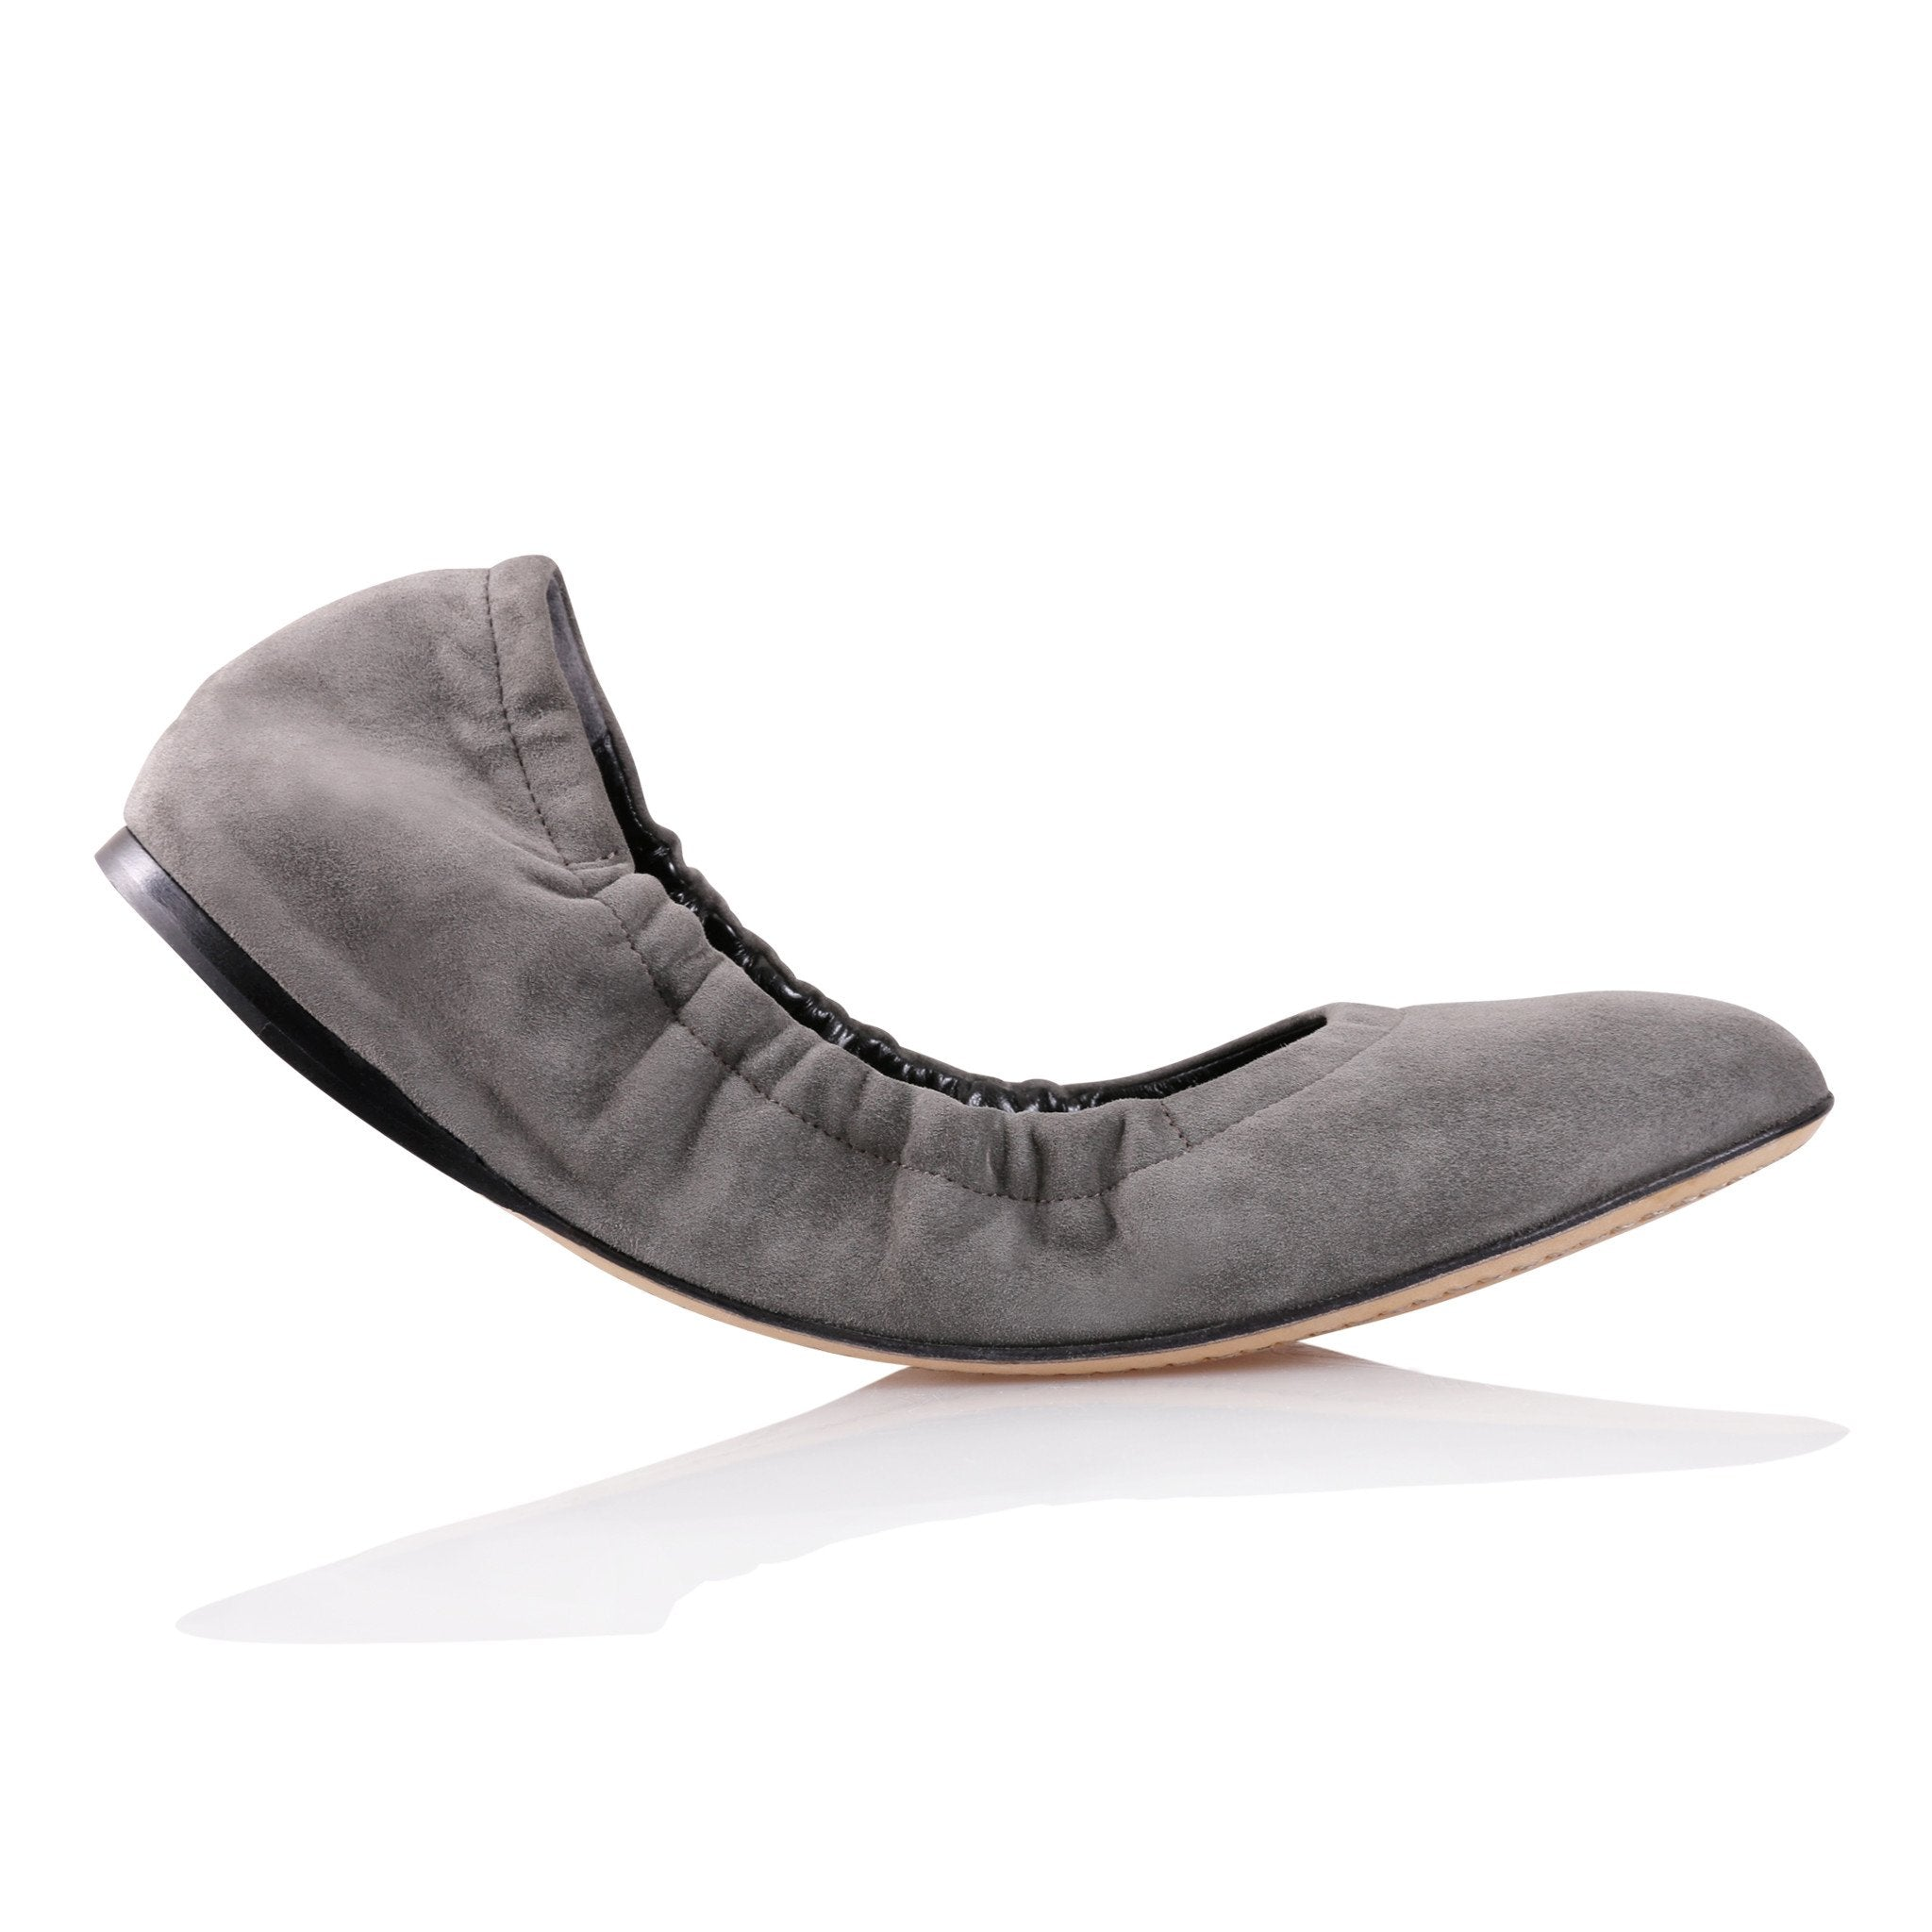 PORTOFINO - Velukid Anthracite, VIAJIYU - Women's Hand Made Sustainable Luxury Shoes. Made in Italy. Made to Order.